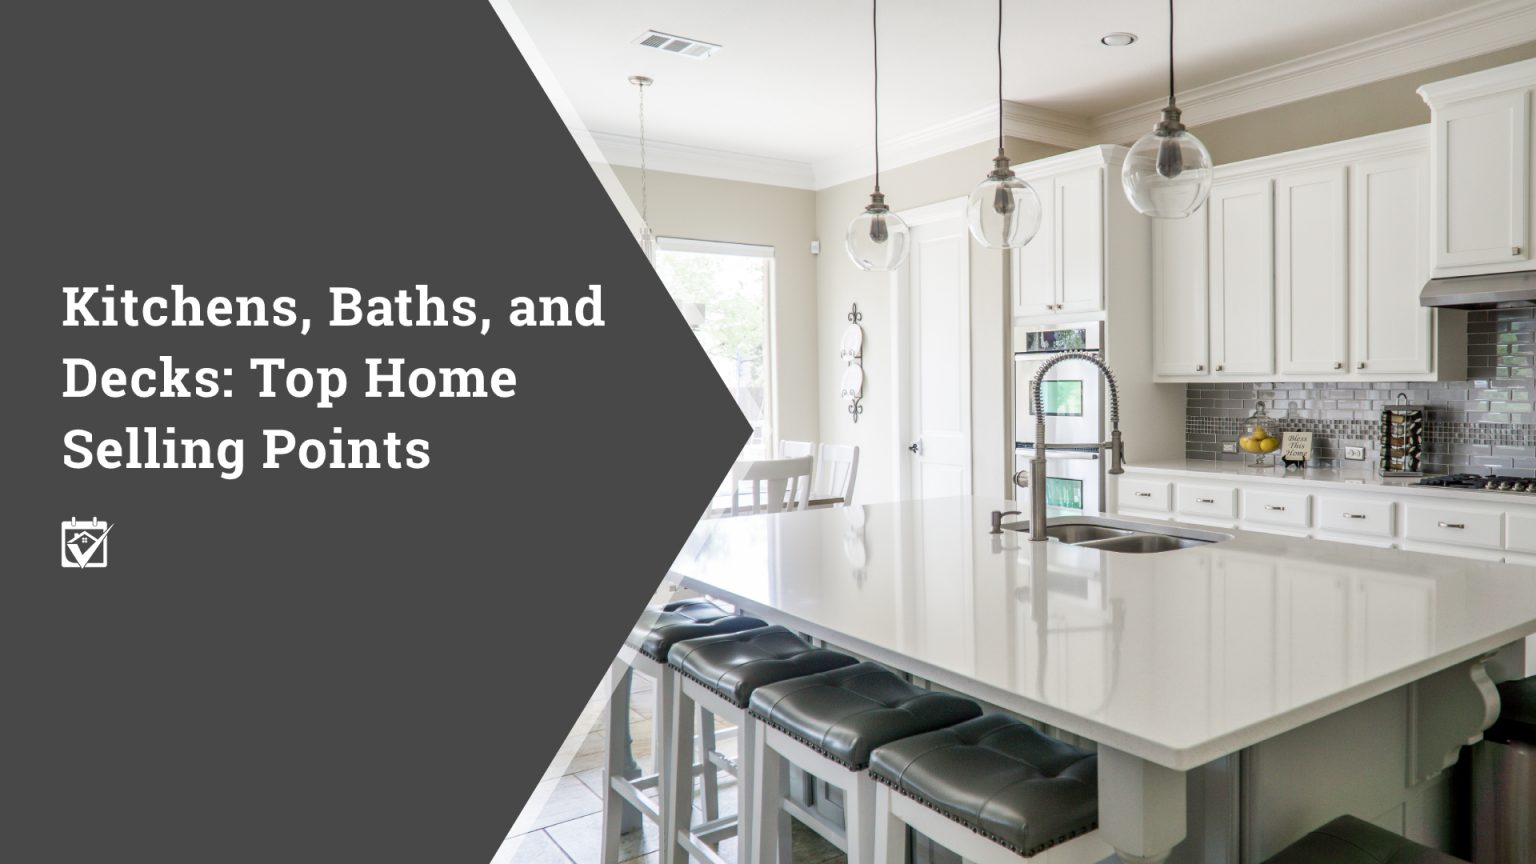 Kitchens, Baths and Decks: Top Home Selling Points